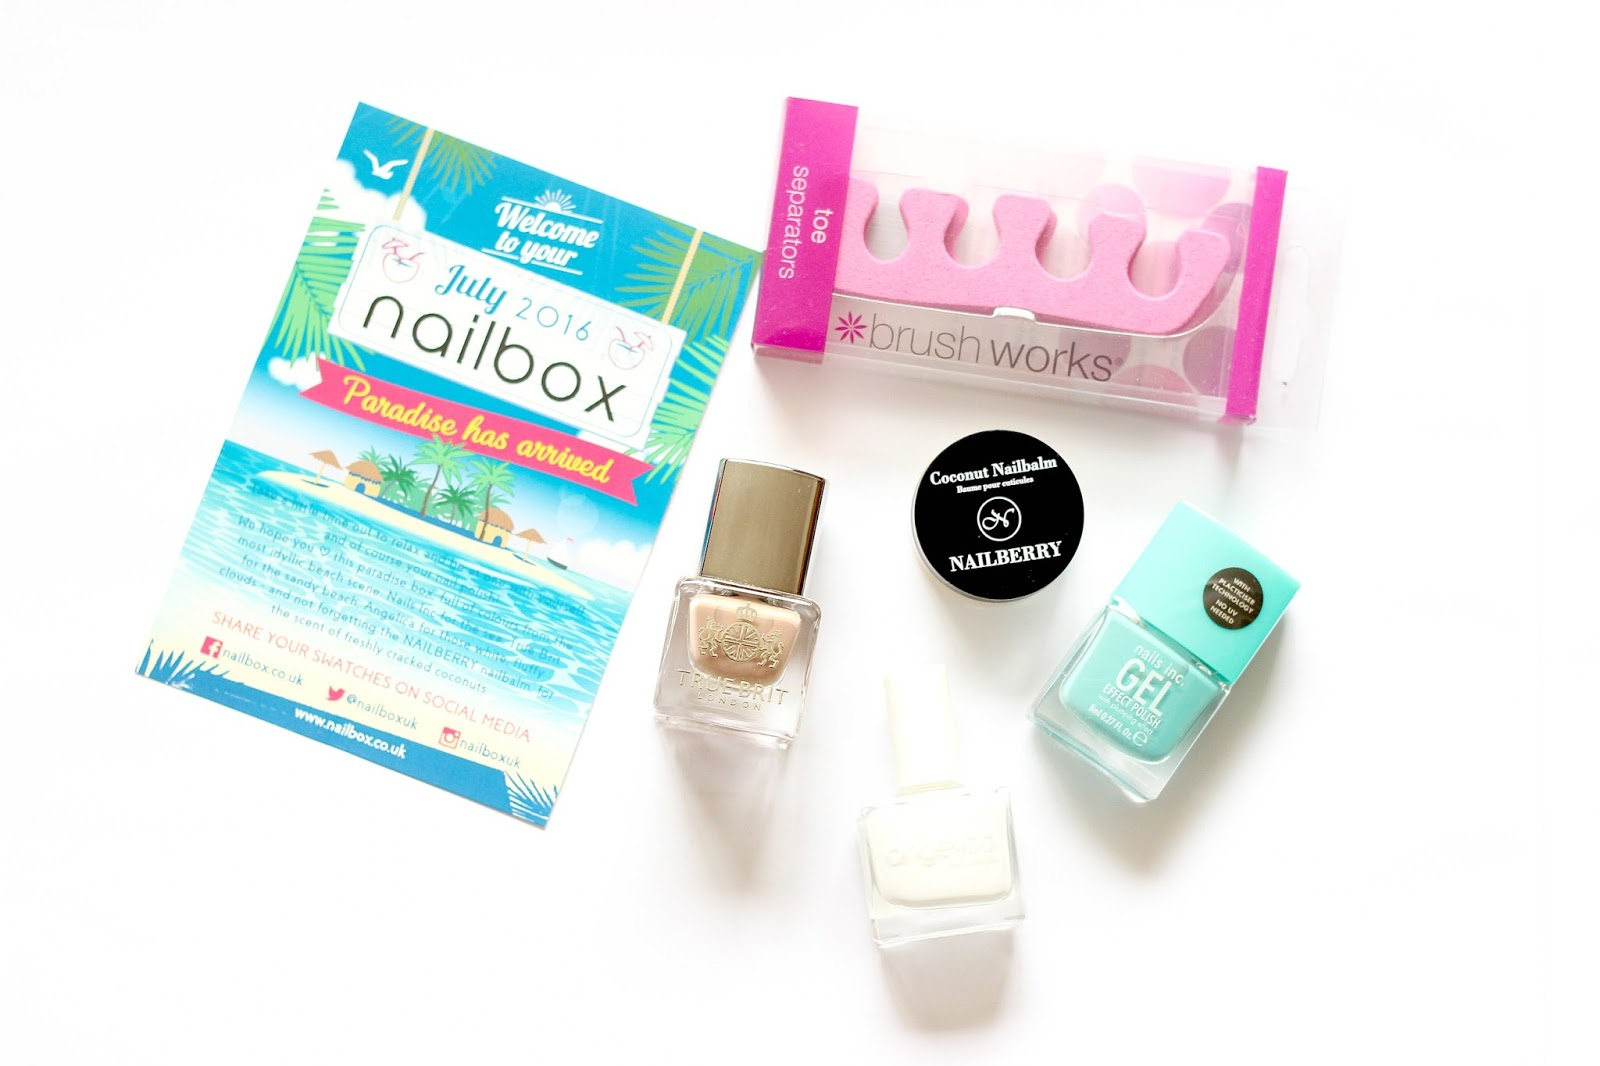 July 2016 nailbox review